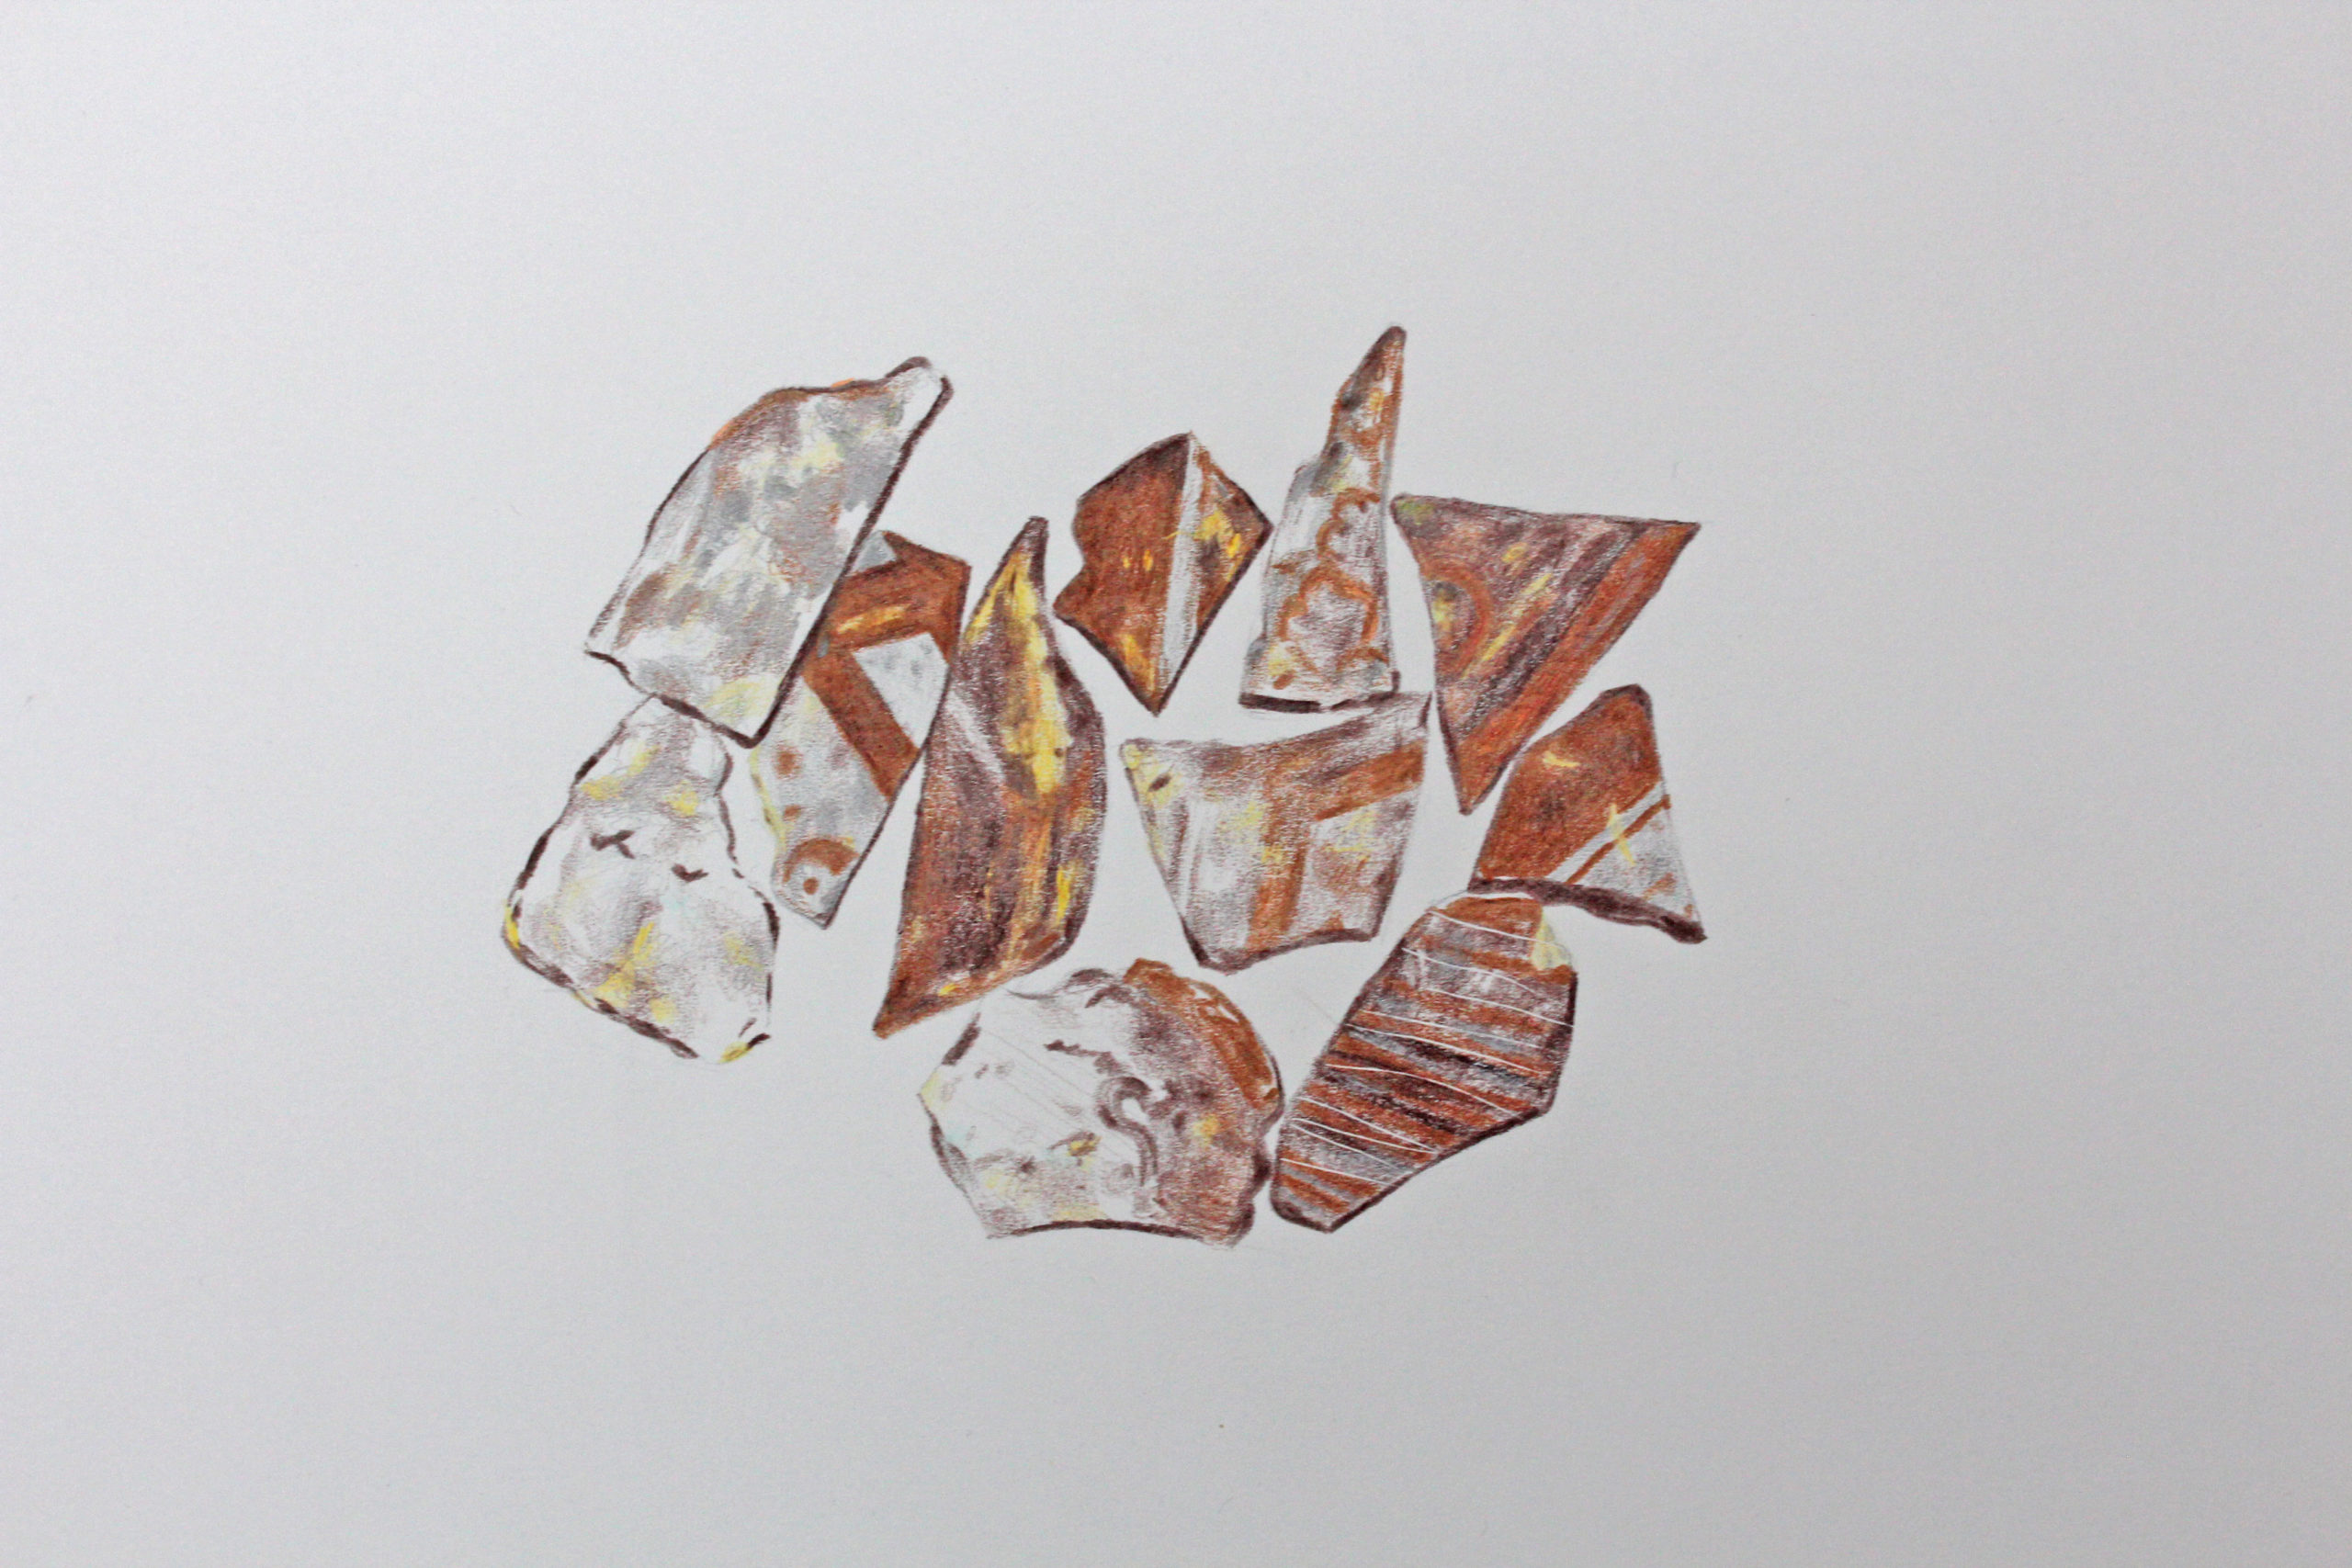 Fragment Group coloured pencil drawing by Abi Spendlove